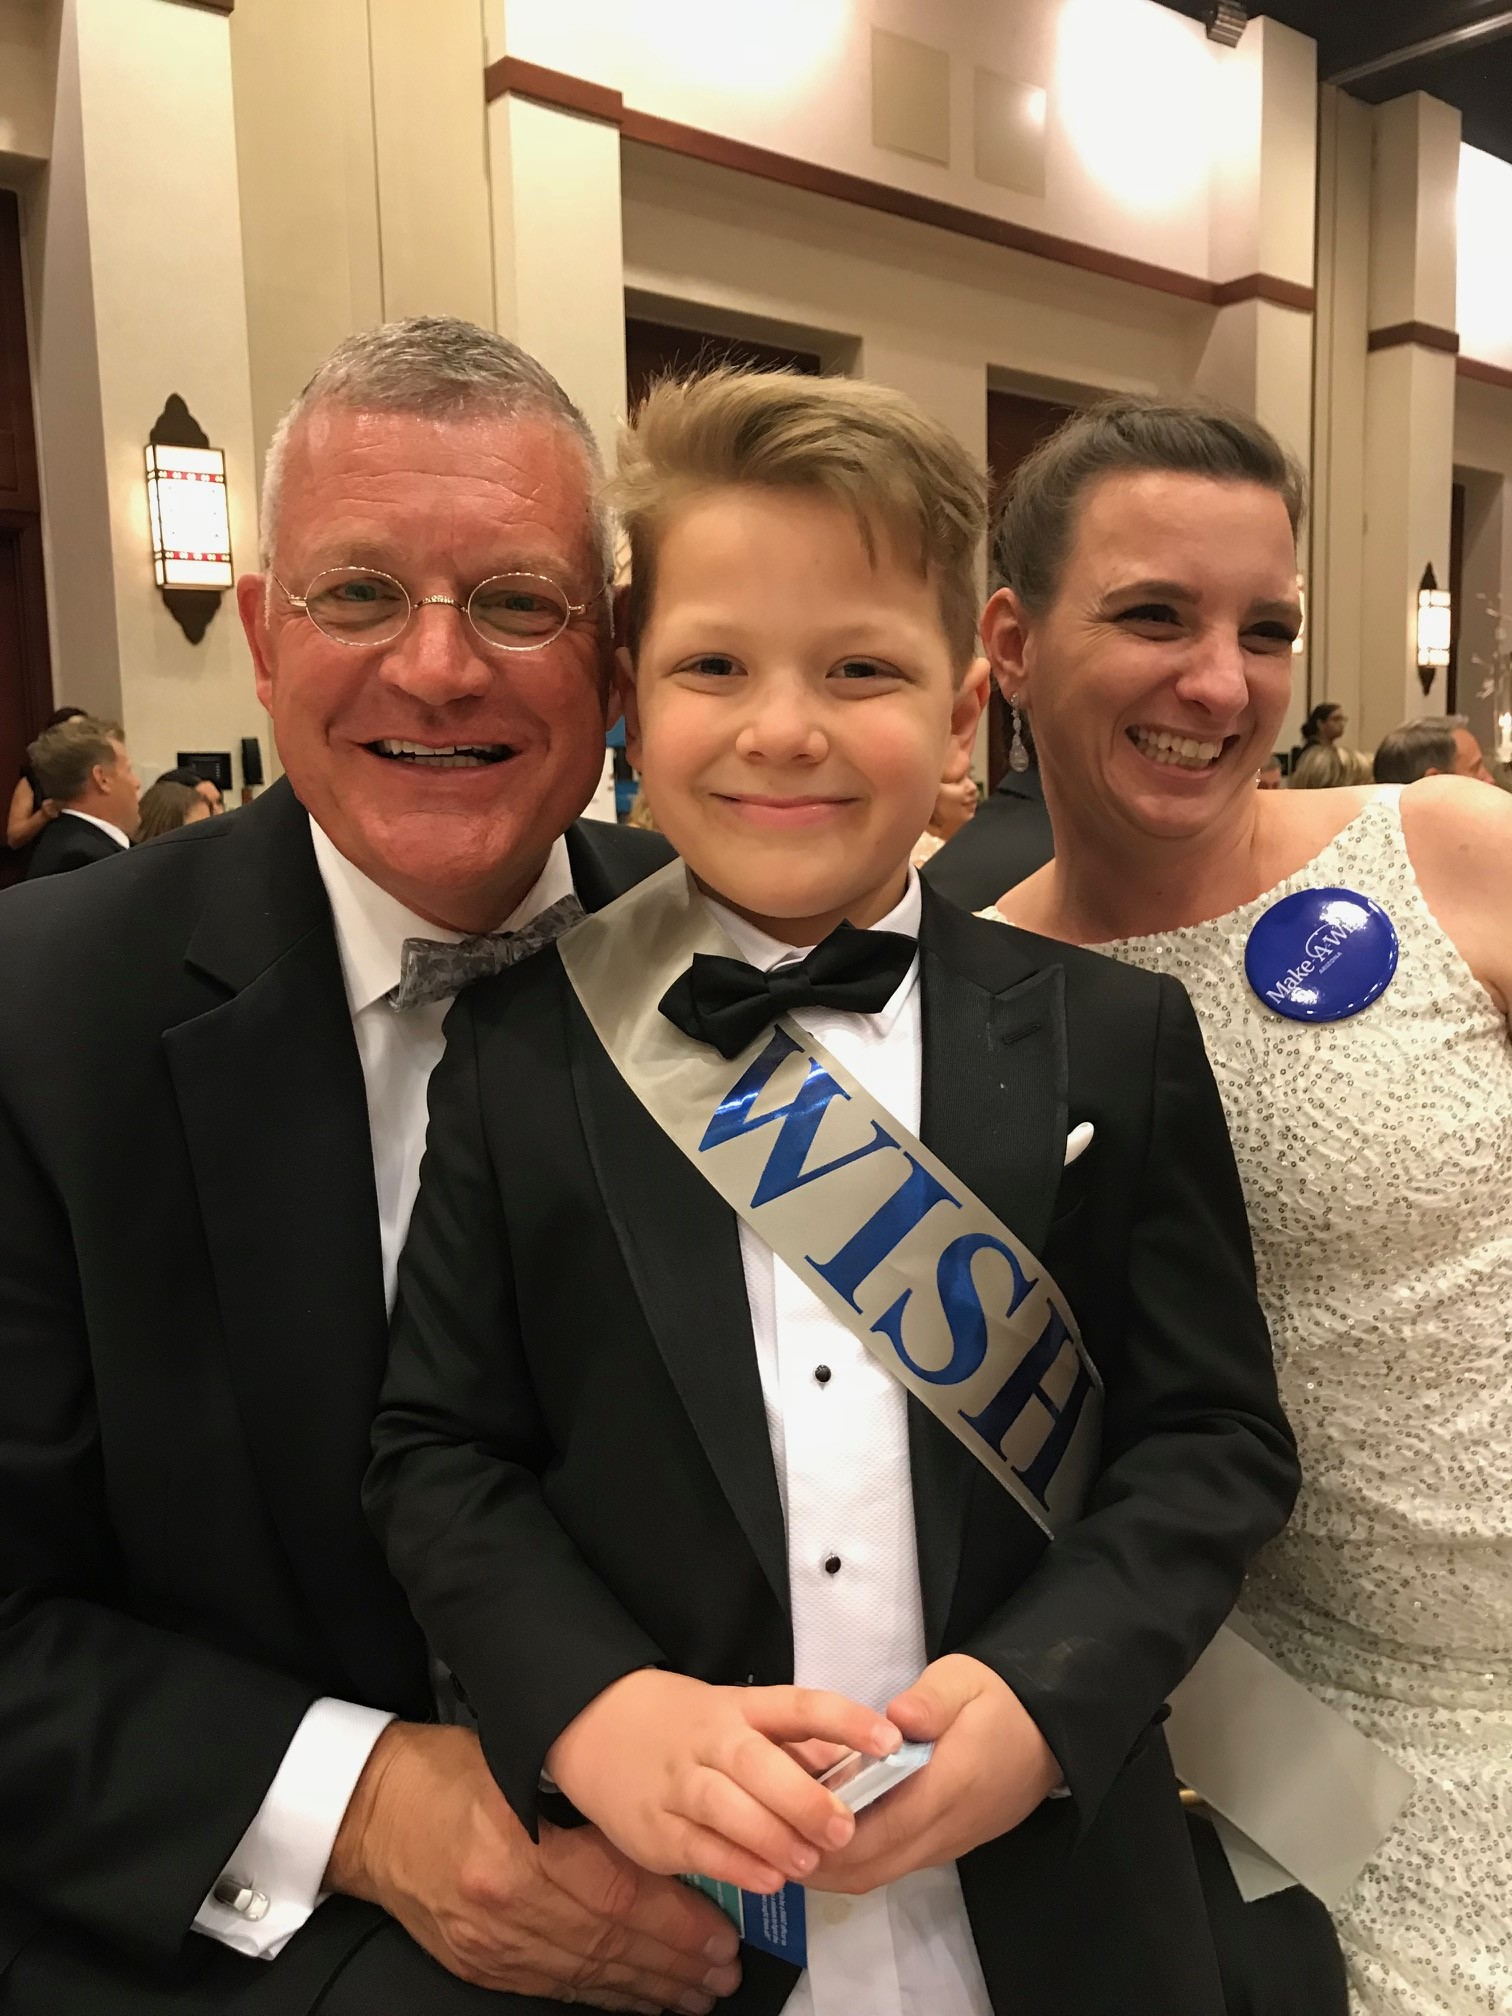 Col. Milstead and Raiden - Make a wish ball